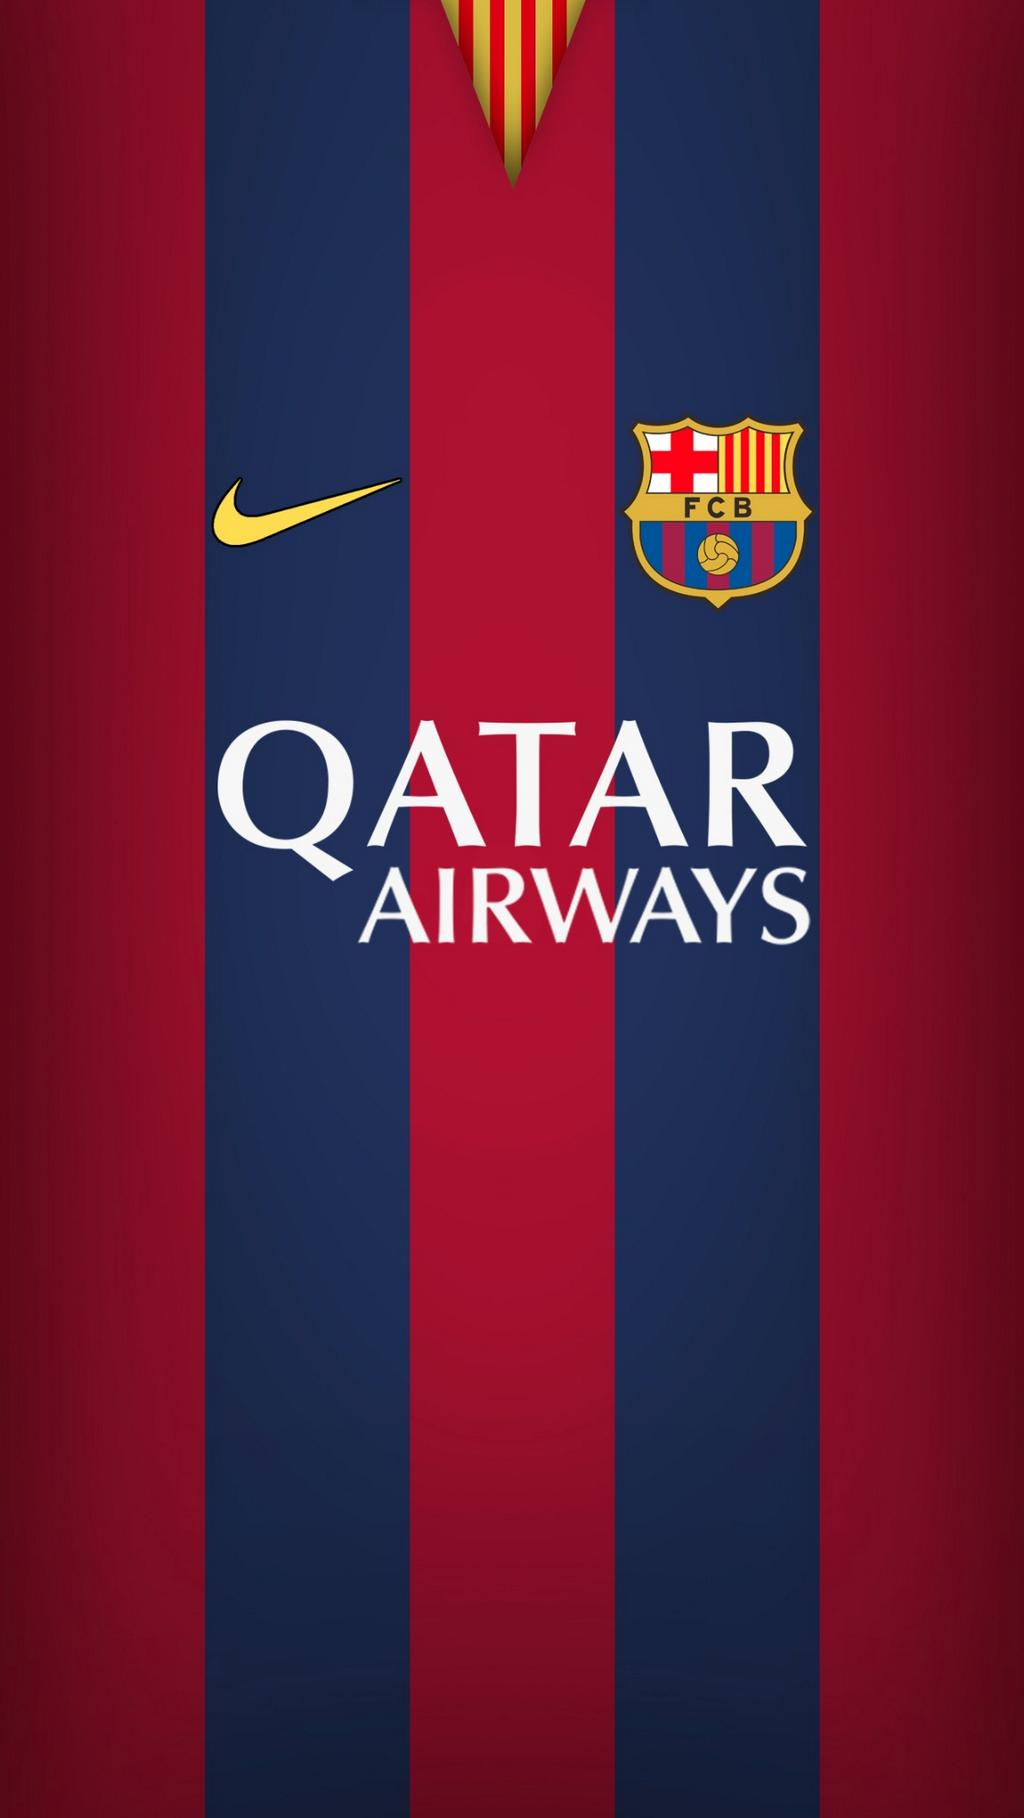 50 ] FC Barcelona Wallpaper Phone On WallpaperSafari